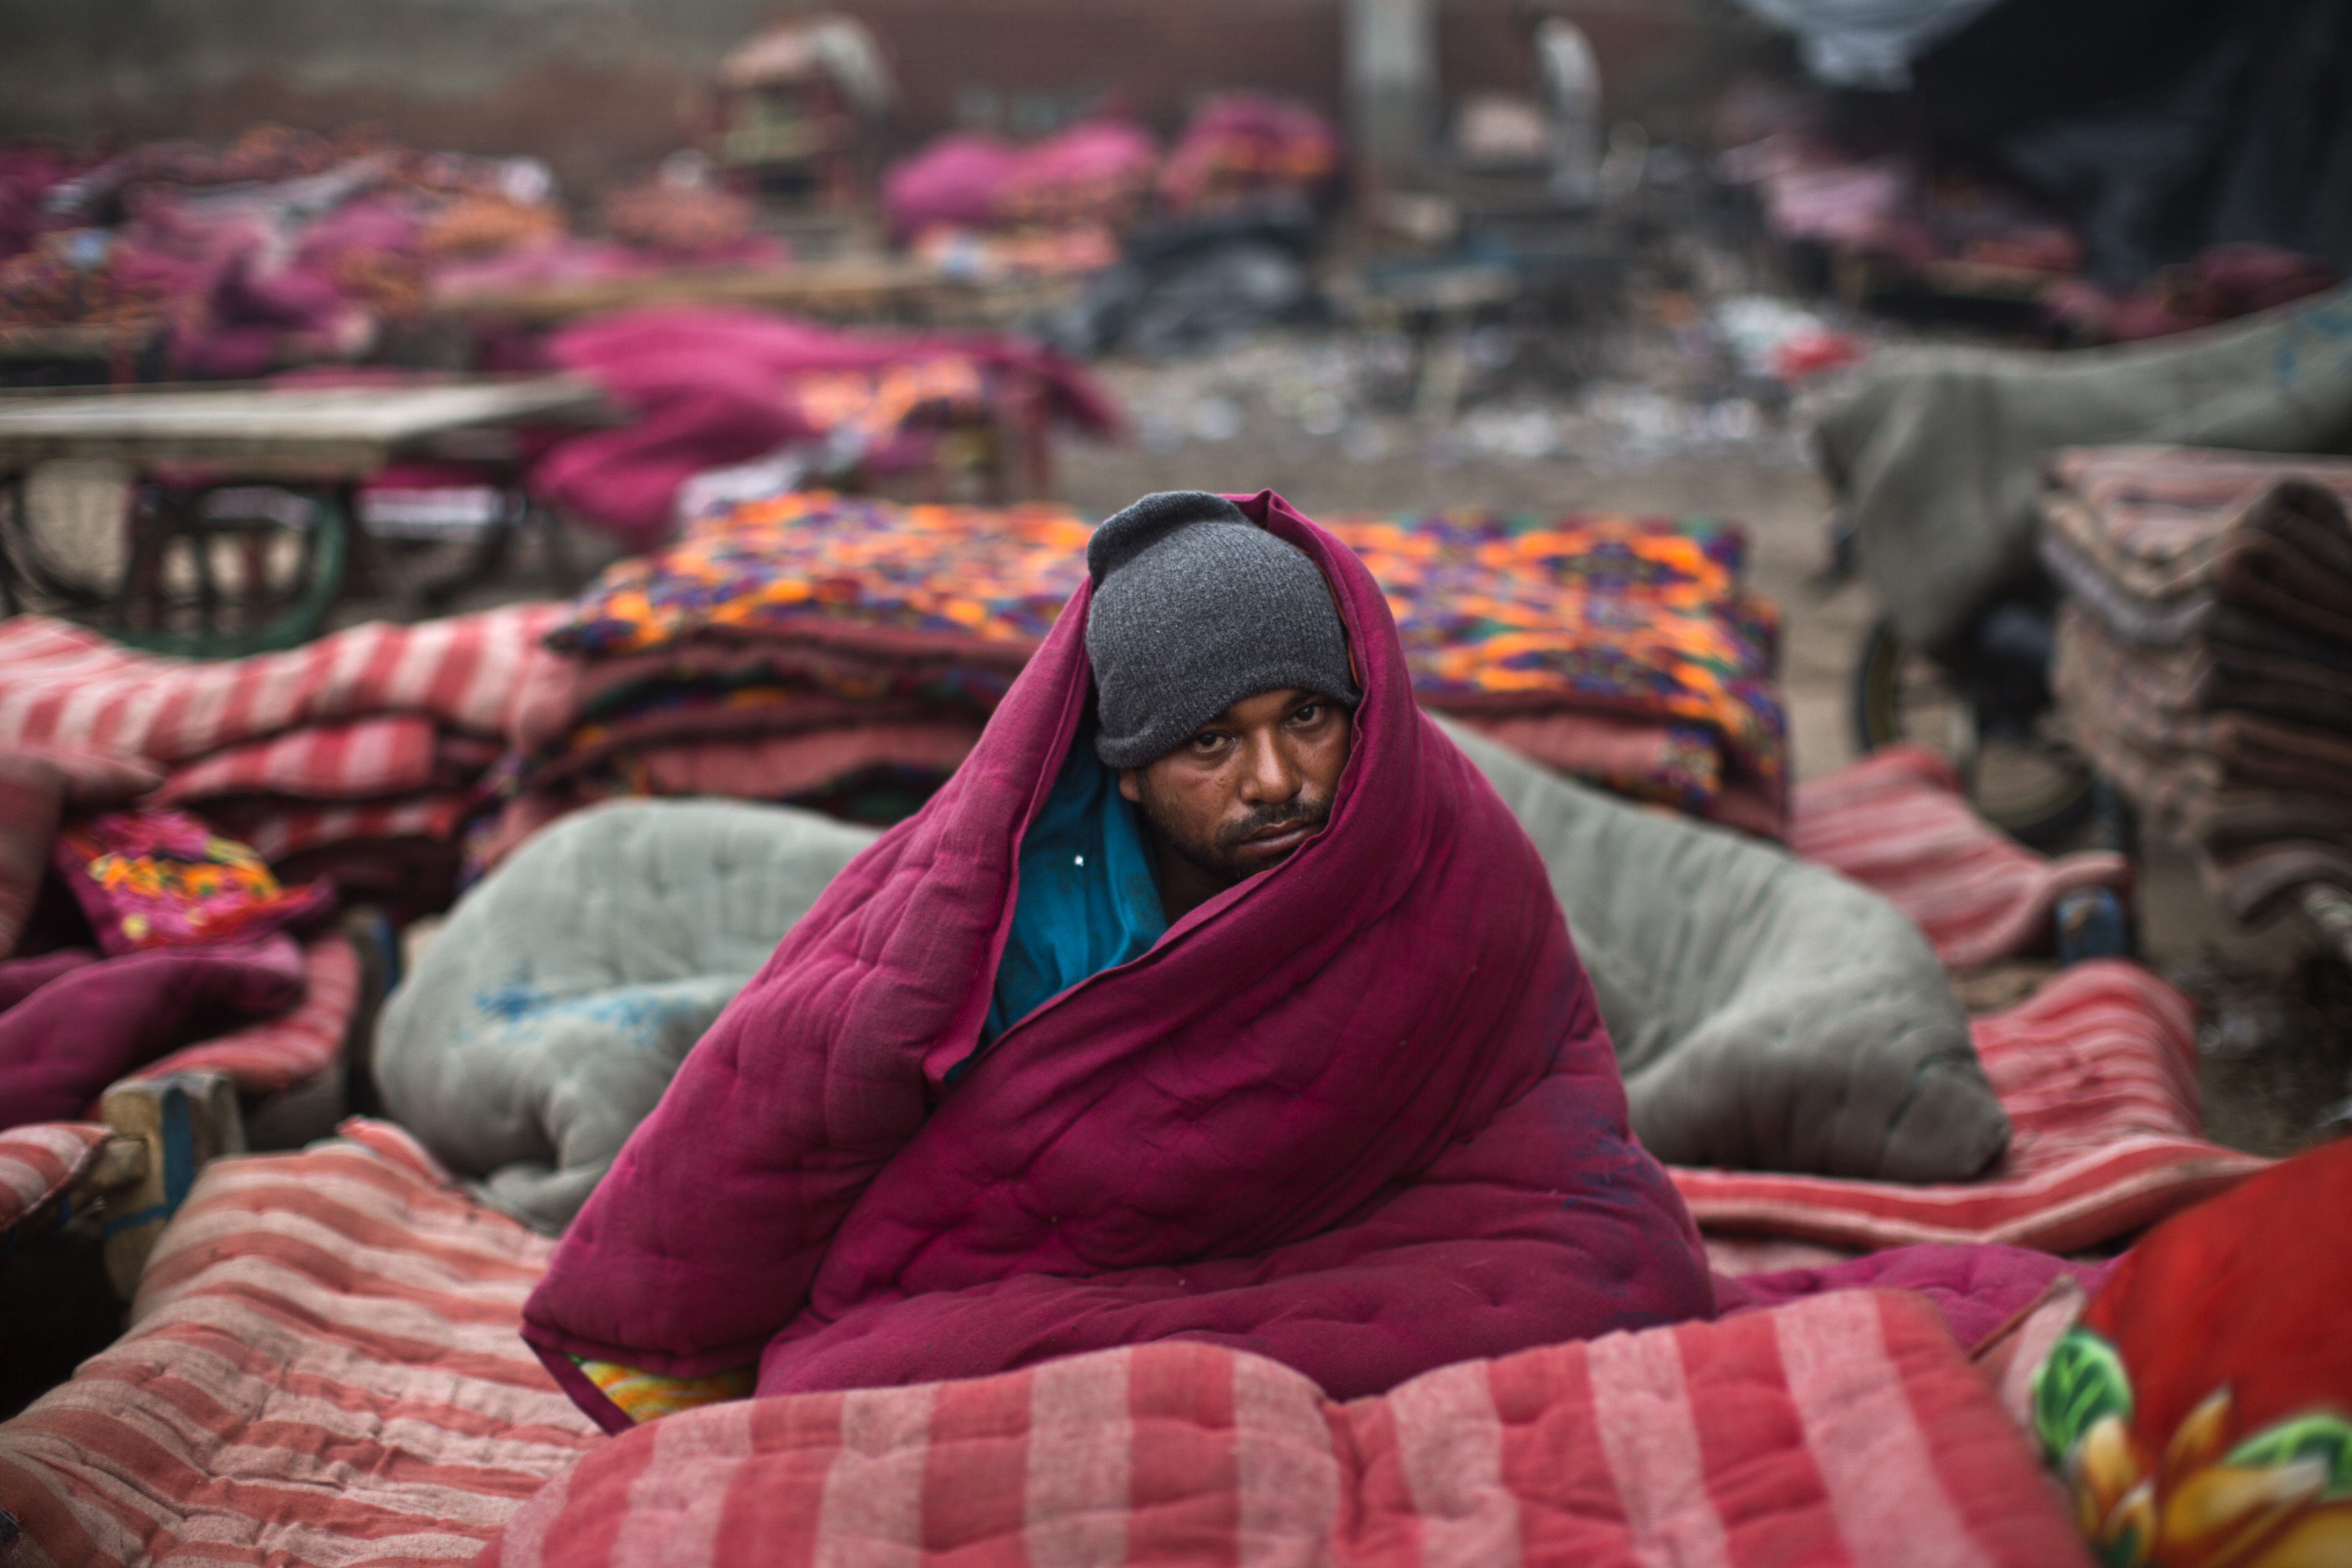 A homeless man, wrapped in a quilt, sits in an open space on a cold winter morning in the old quarters of Delhi January 3, 2013. Heavy fog and a cold wave in Northern India have disrupted life in a number of cities, killing scores of homeless in the state of Uttar Pradesh, as the temperature dipped to around 4 degrees Celsius (39.2 degrees Fahrenheit). REUTERS/Ahmad Masood (INDIA - Tags: ENVIRONMENT SOCIETY POVERTY) - RTR3C2D6